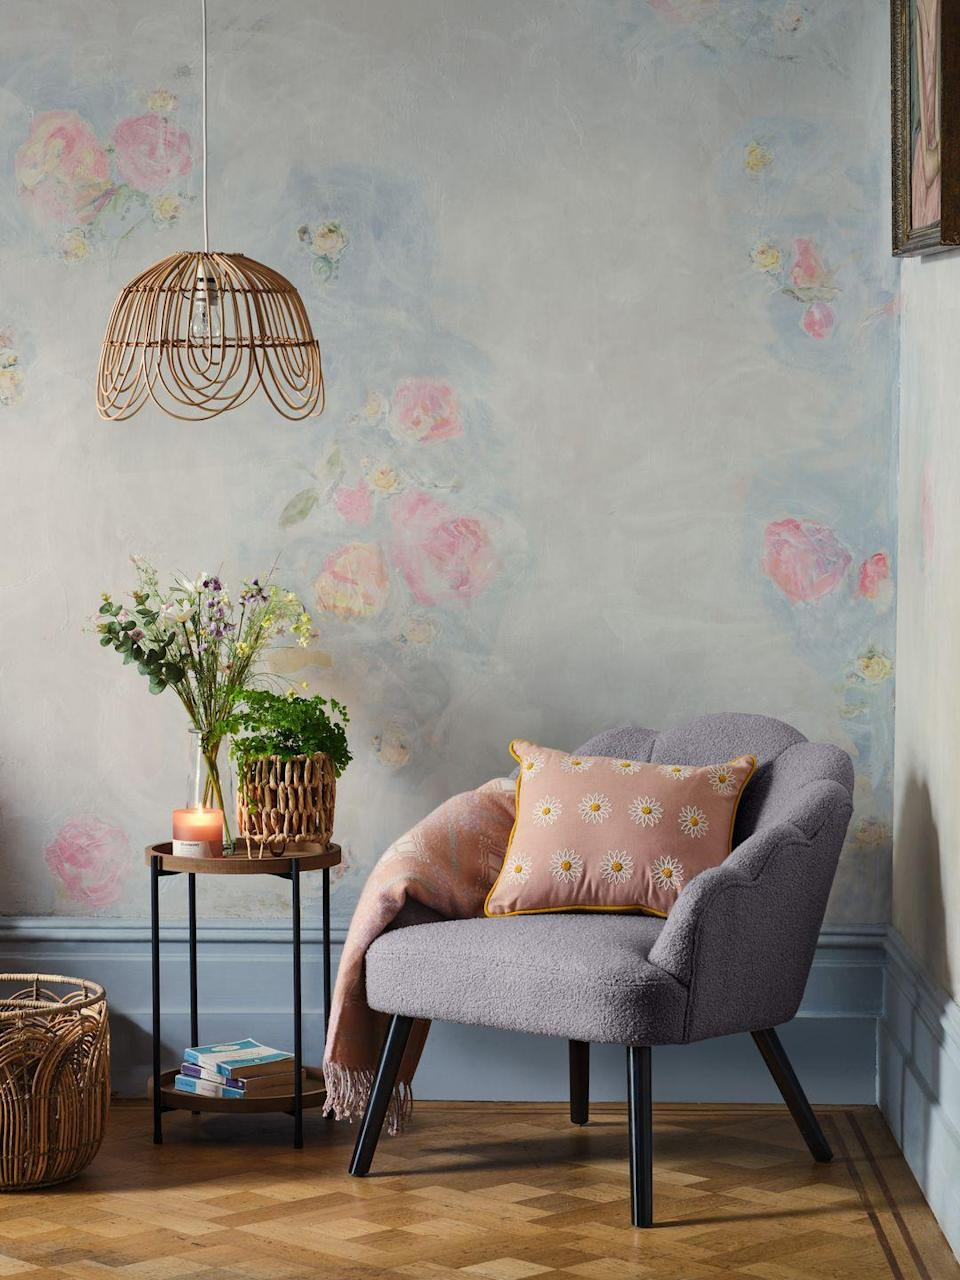 """<p>With a calming colour palette (think pinks, soft greys and lilacs), the English Weekend trend has gorgeous accessories such as floral scatter cushions (£7), weave <a href=""""https://www.housebeautiful.com/uk/lifestyle/storage/g31213380/storage-baskets/"""" rel=""""nofollow noopener"""" target=""""_blank"""" data-ylk=""""slk:baskets"""" class=""""link rapid-noclick-resp"""">baskets</a> (£30) and scalloped bamboo light shades (£30). Make sure not to miss out...</p><p><a class=""""link rapid-noclick-resp"""" href=""""https://direct.asda.com/george/home/D26,default,sc.html"""" rel=""""nofollow noopener"""" target=""""_blank"""" data-ylk=""""slk:SHOP NOW"""">SHOP NOW</a></p>"""